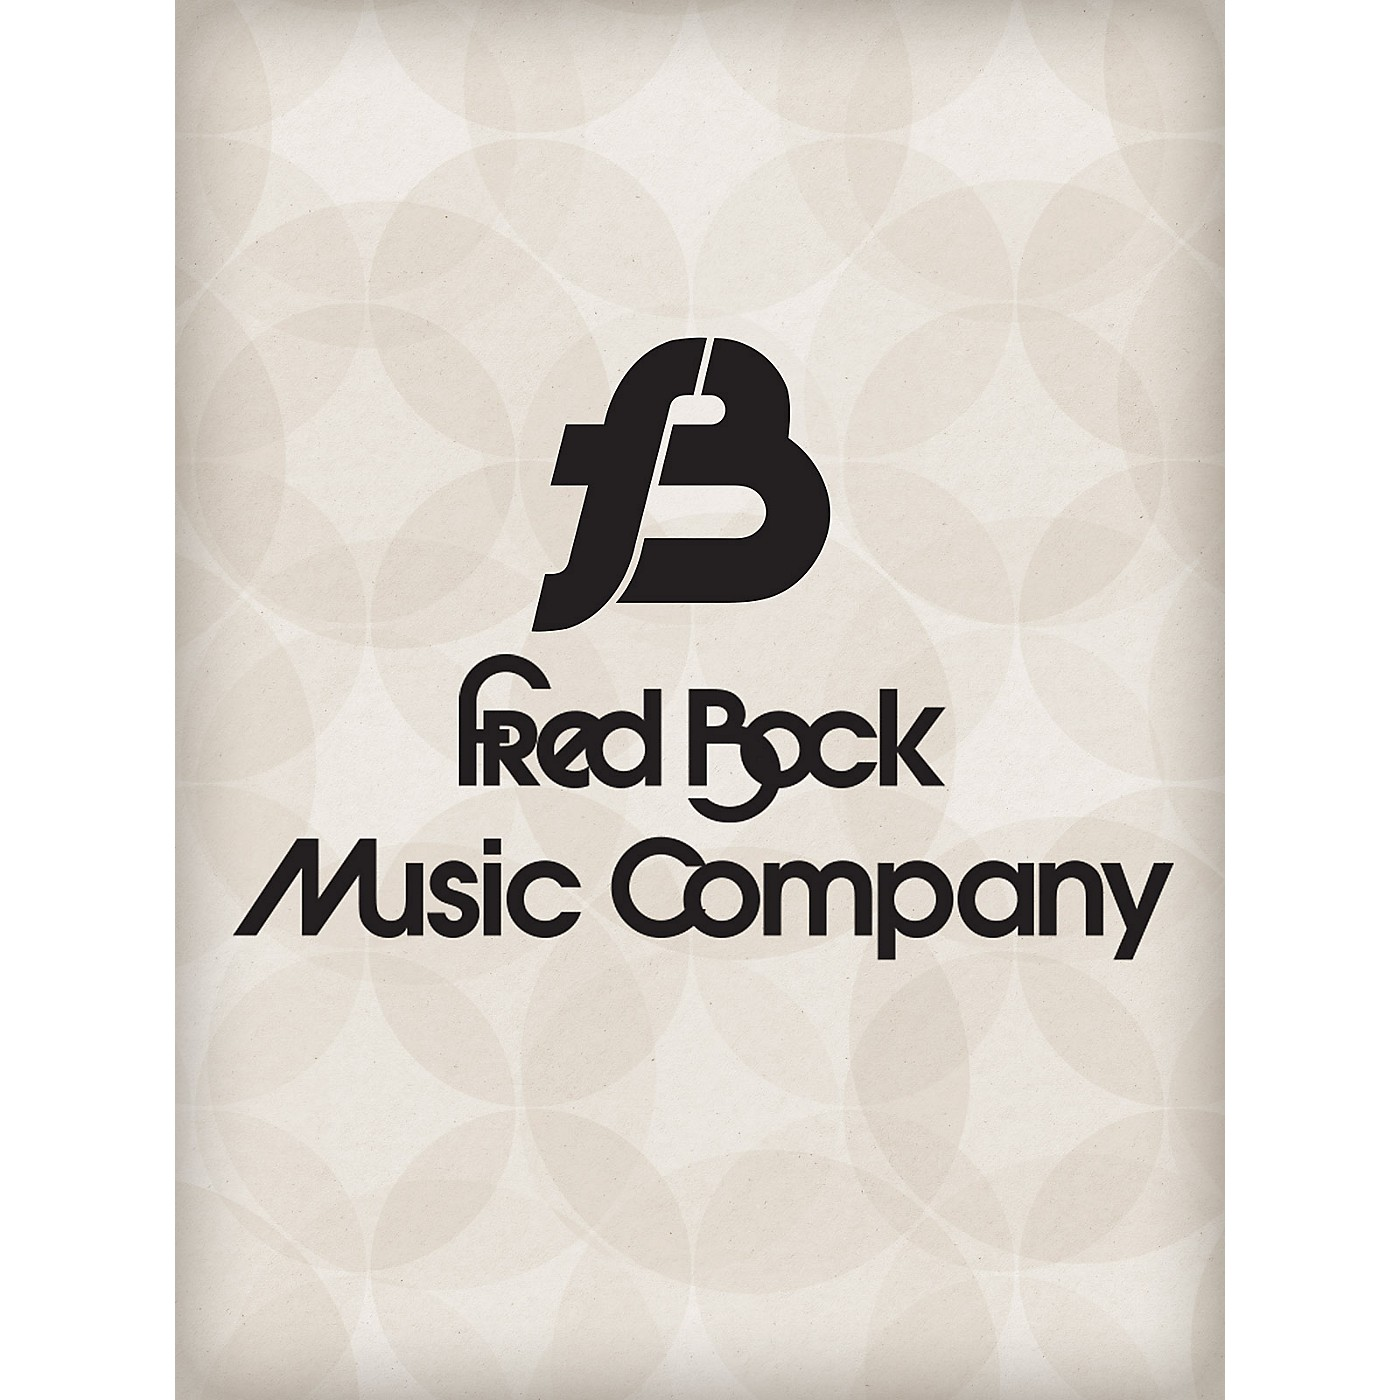 Fred Bock Music Praise the Lord, His Glories Show SATB Composed by Henry F. Lyte thumbnail